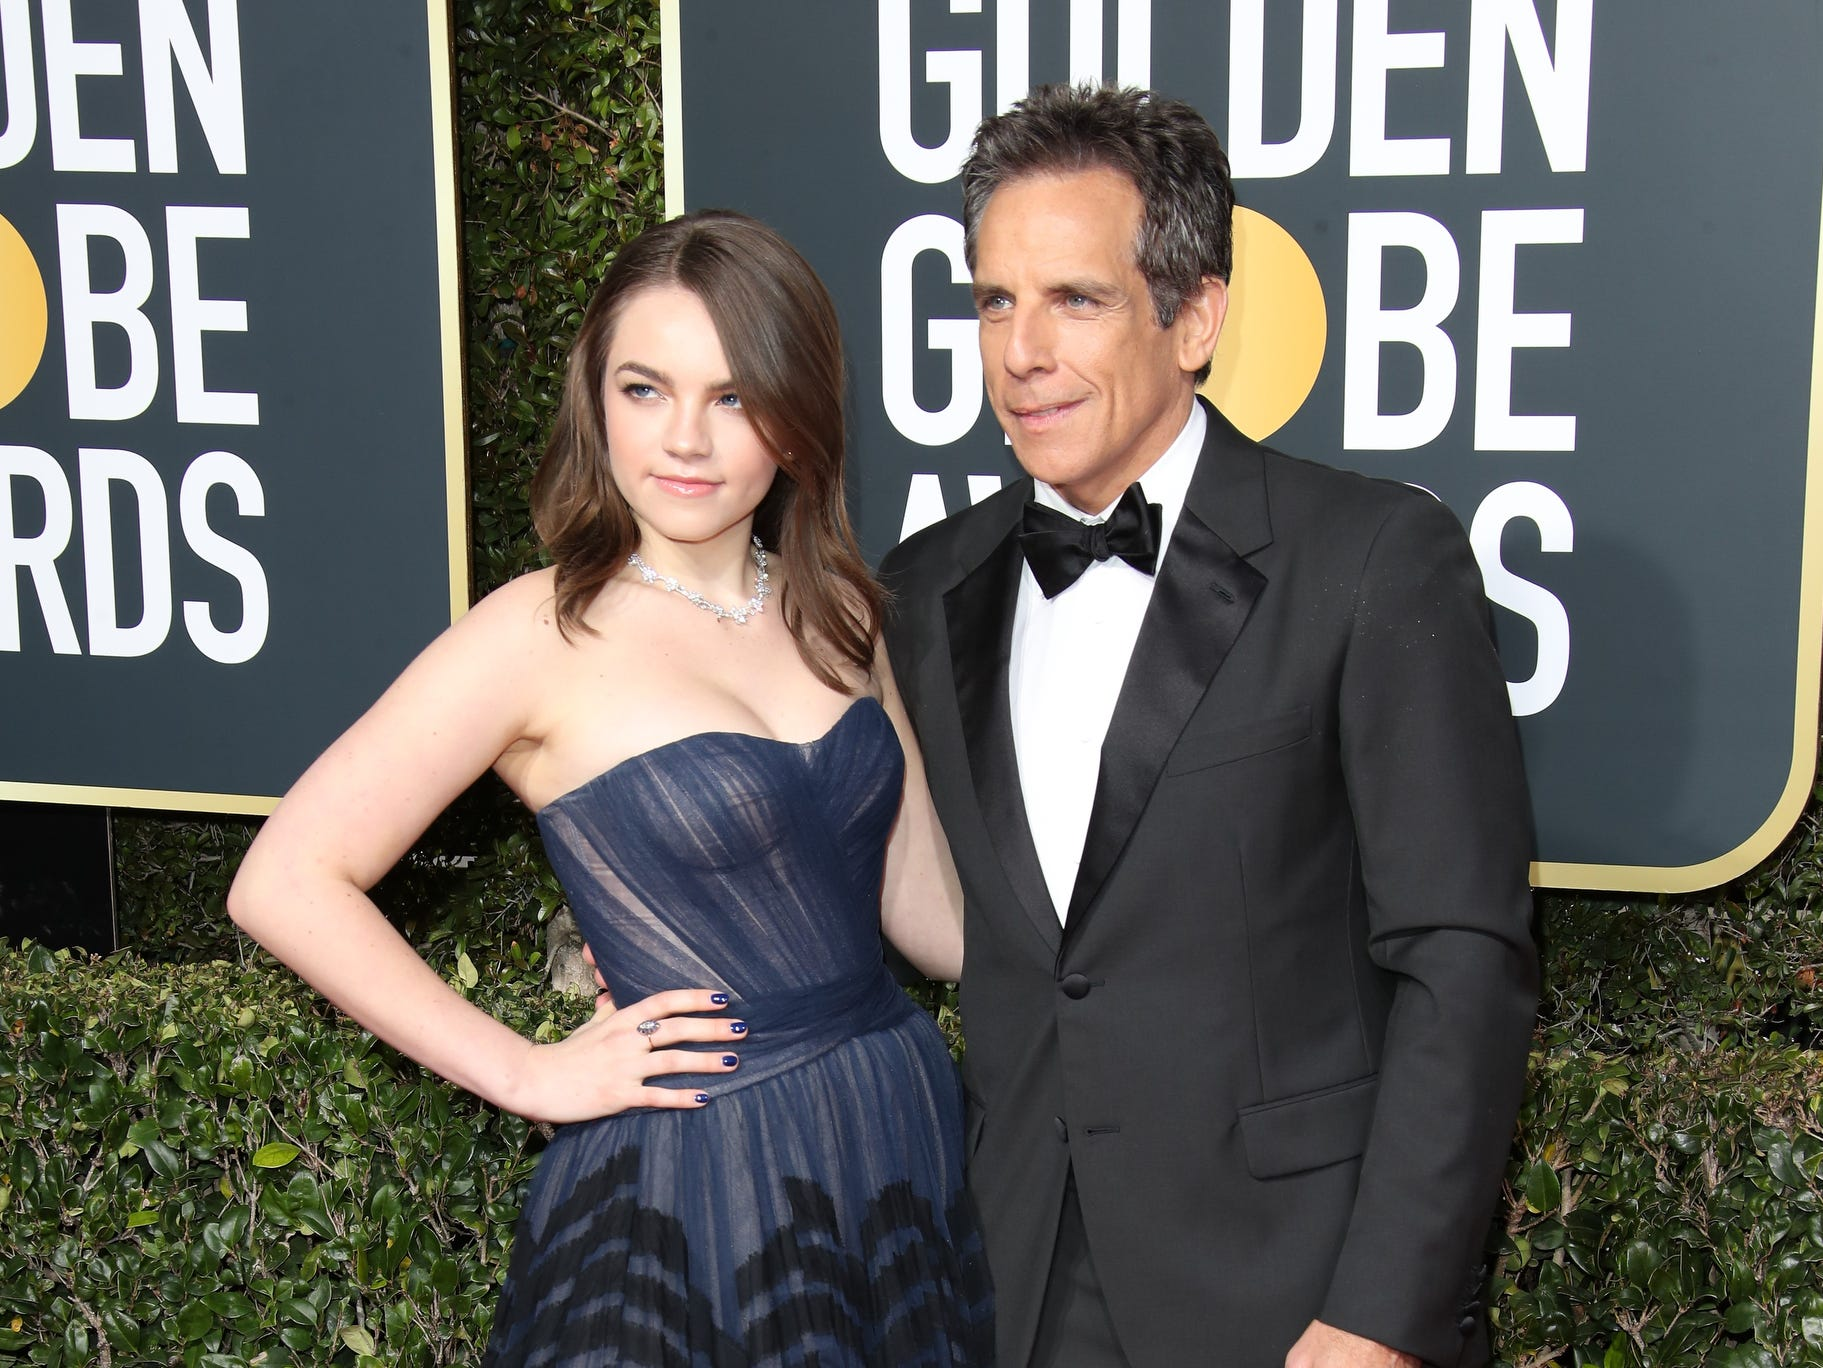 Ella and Ben Stiller